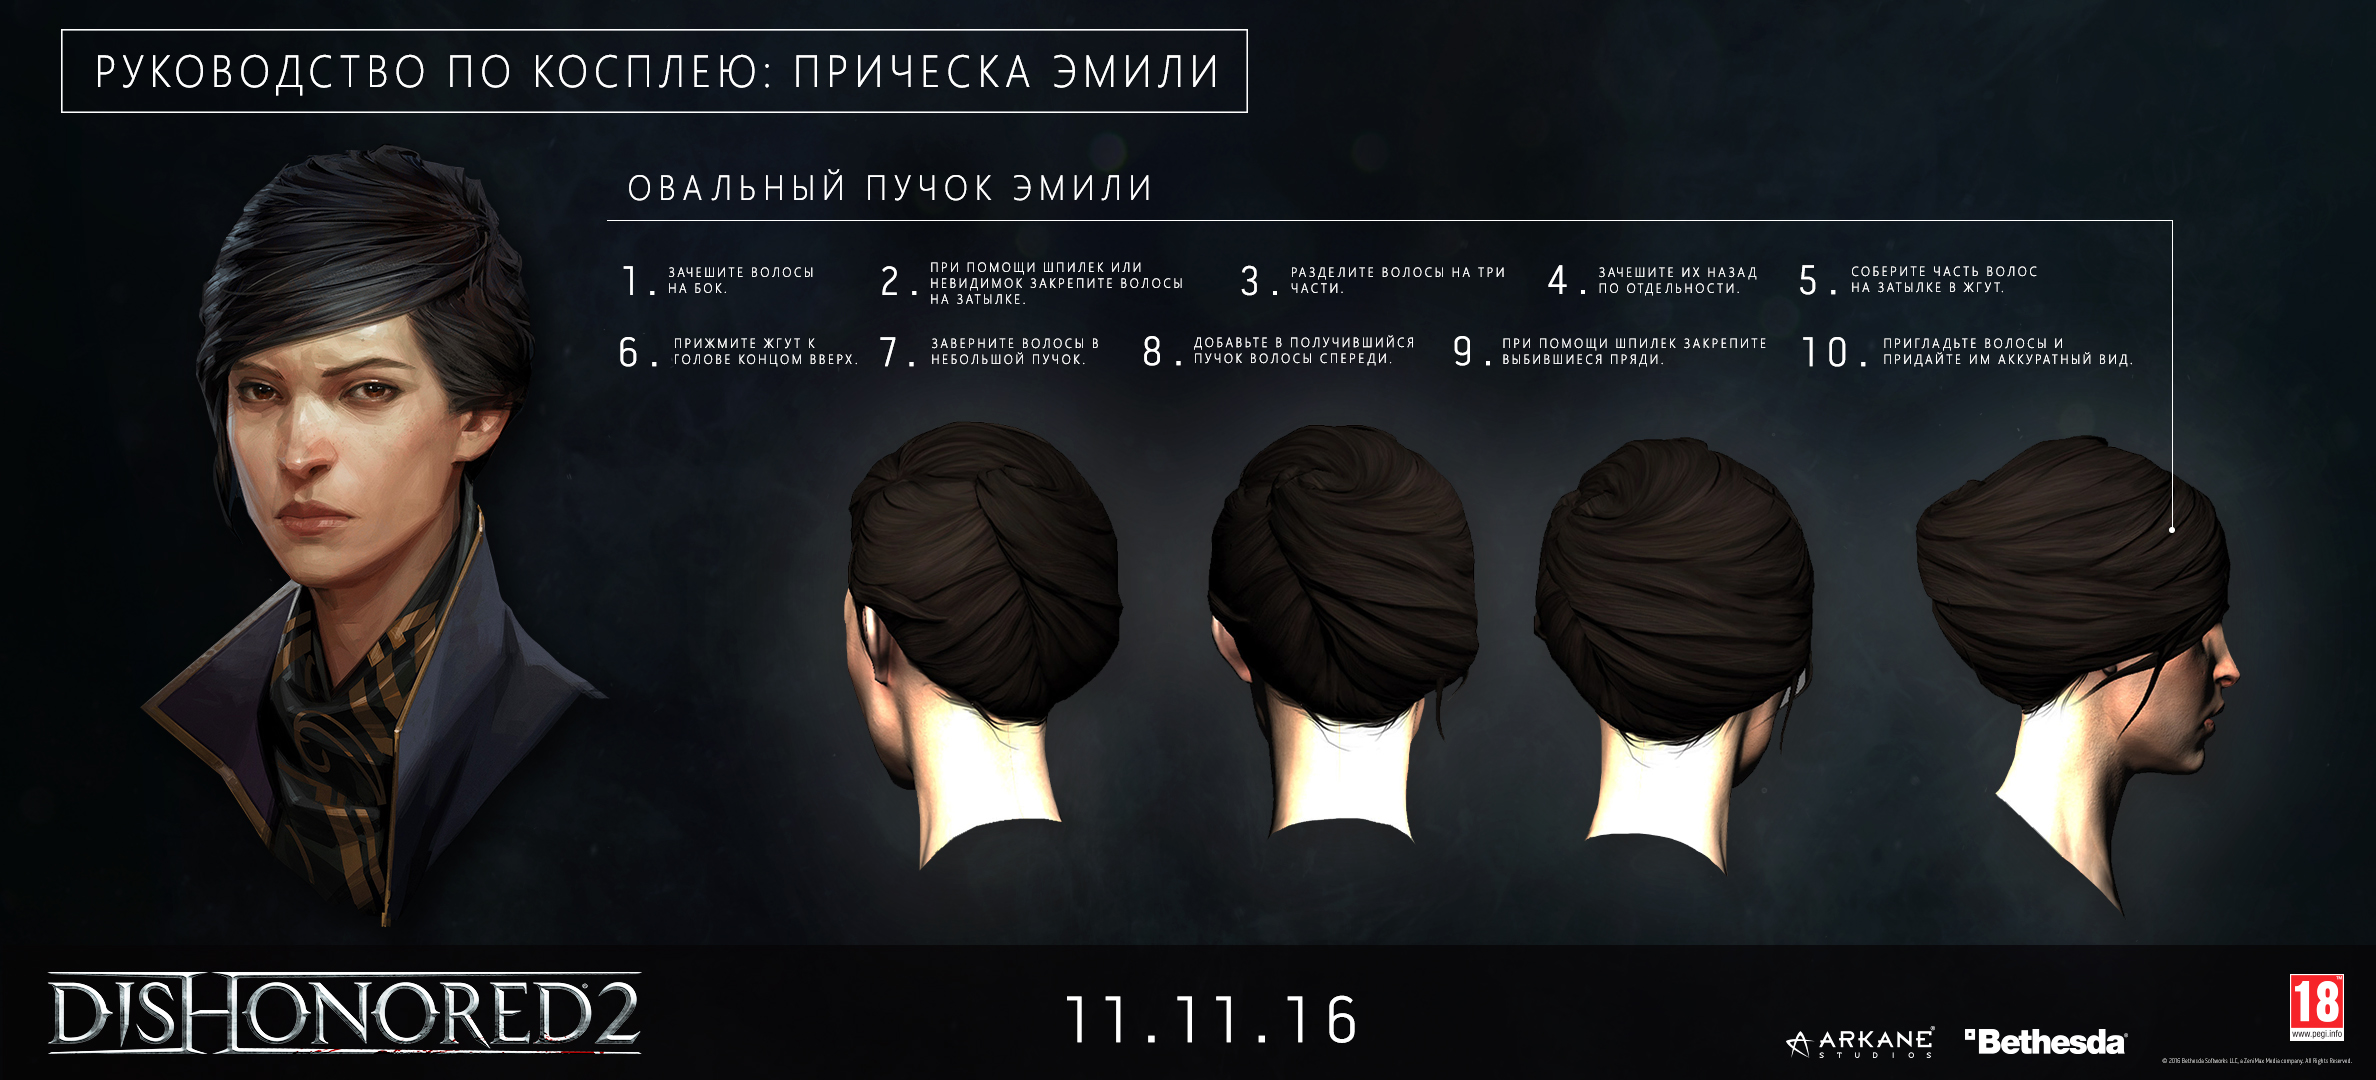 http://images.contentful.com/rporu91m20dc/HPHVFhpOW2aeeE20oigyq/5d842a3fa7001008c6074229722c78d3/Dishonored2_CosplayGuideRU_EmilyTwist_FULL.jpg